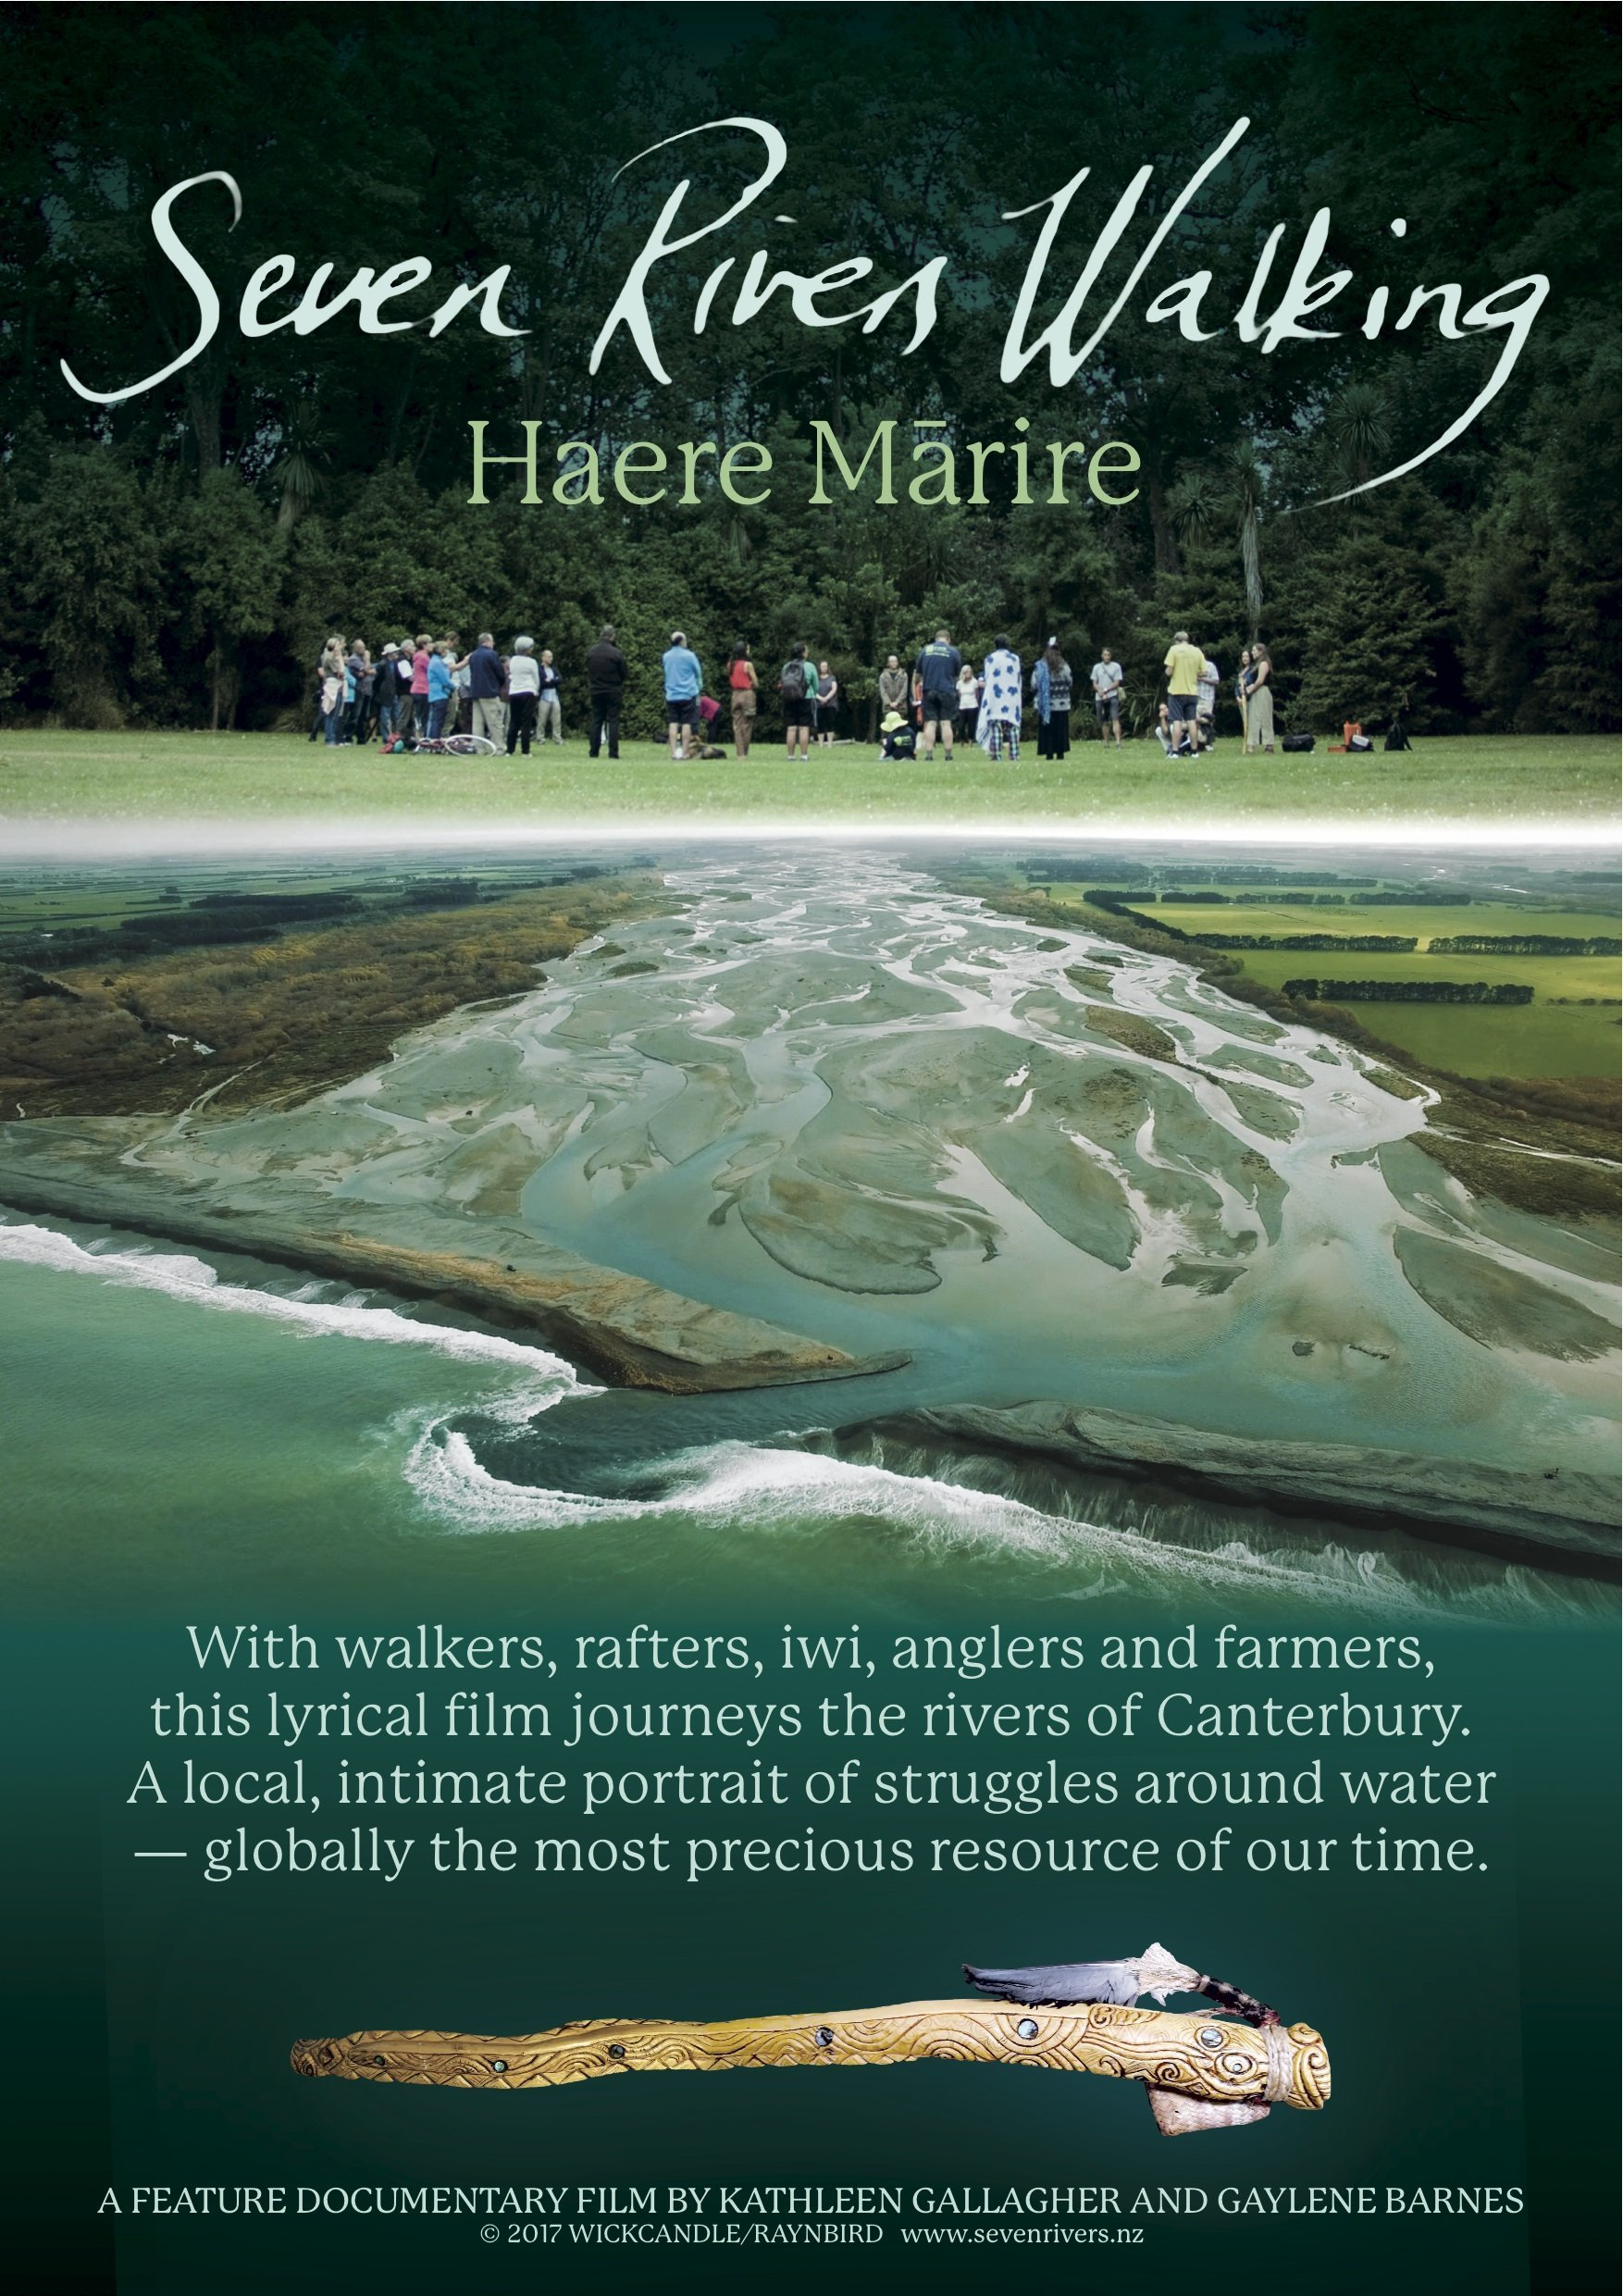 Poster of Seven Rivers Walking - Haere Marire